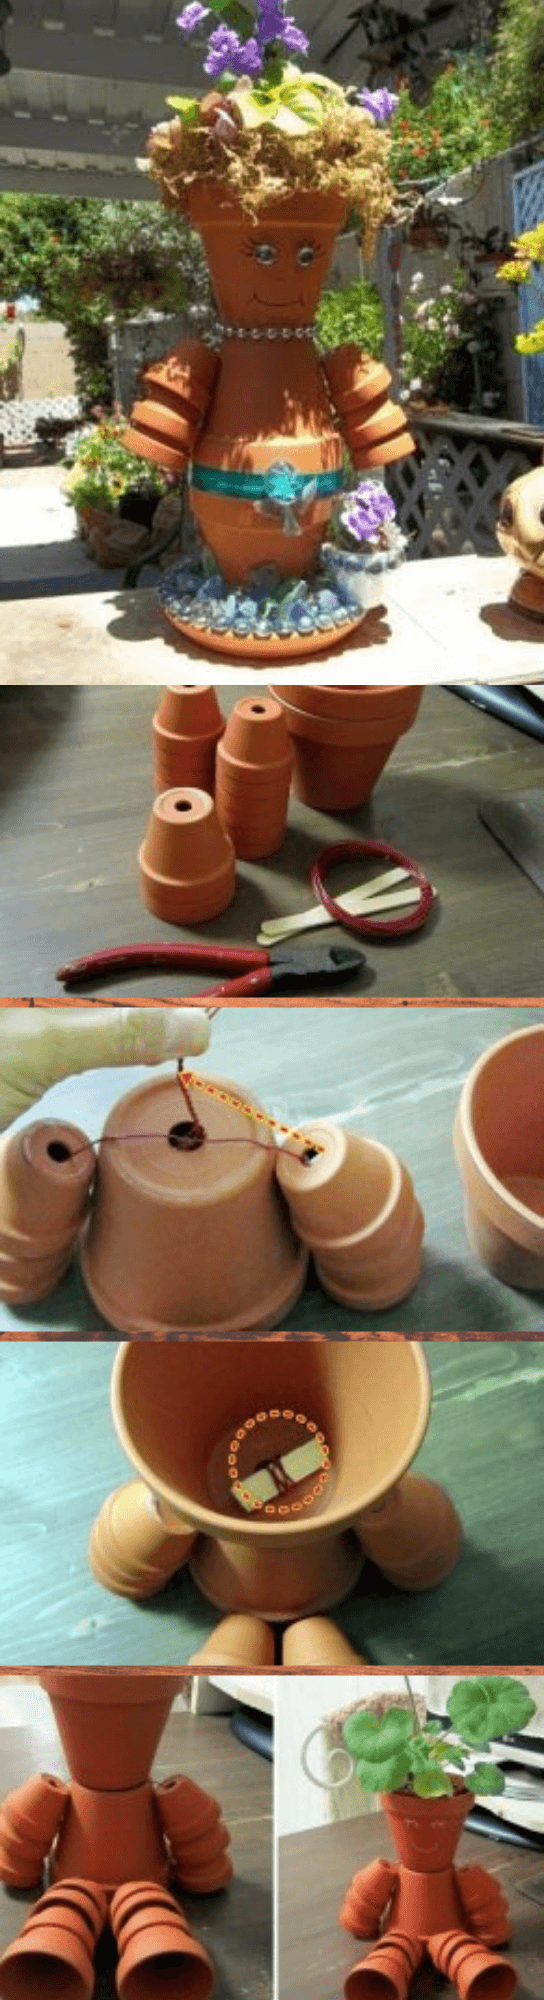 DIY Clay Pot Flower People